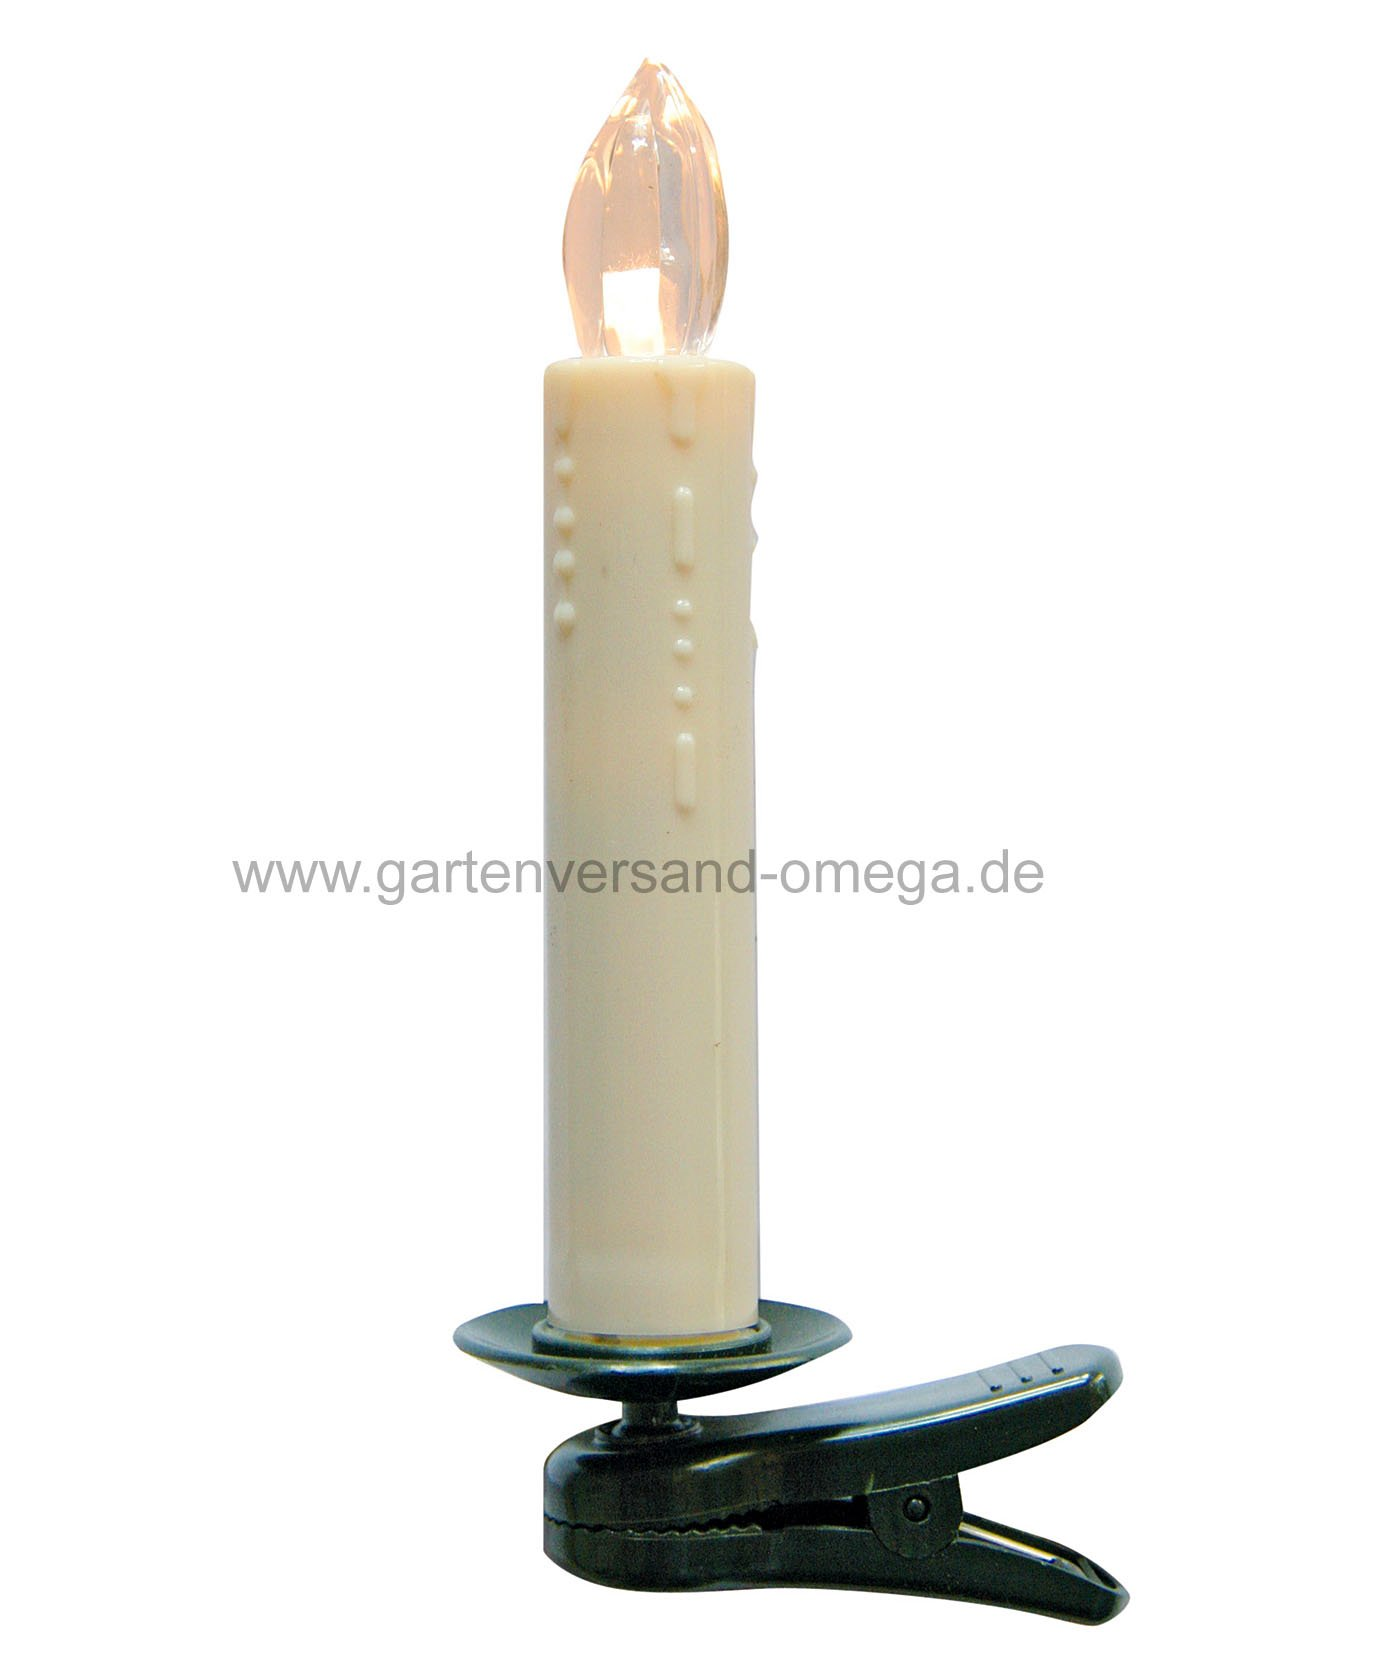 weihnachtsbaum lichterkette ohne kabel my blog. Black Bedroom Furniture Sets. Home Design Ideas